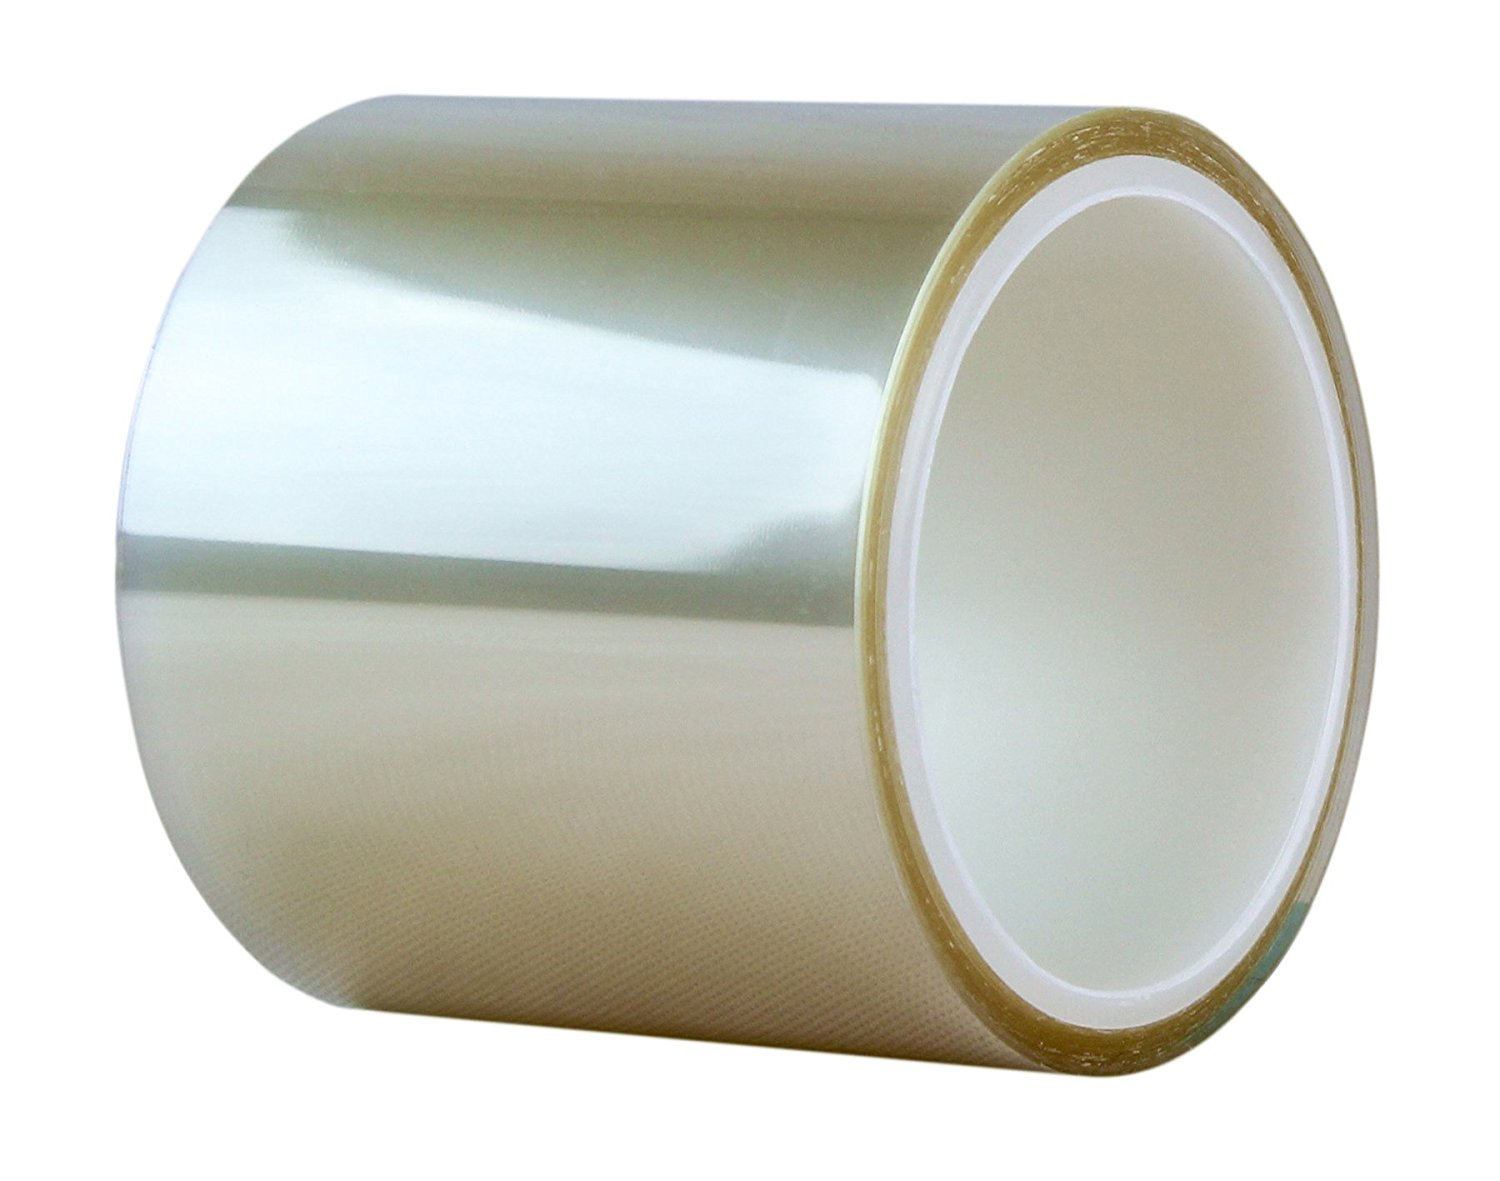 "TIERRAFILM Cake Collar, Chocolate and Cake Decorating Acetate Sheet CLEAR ACETATE ROLL - 4"" x 32 feet 125 micron"